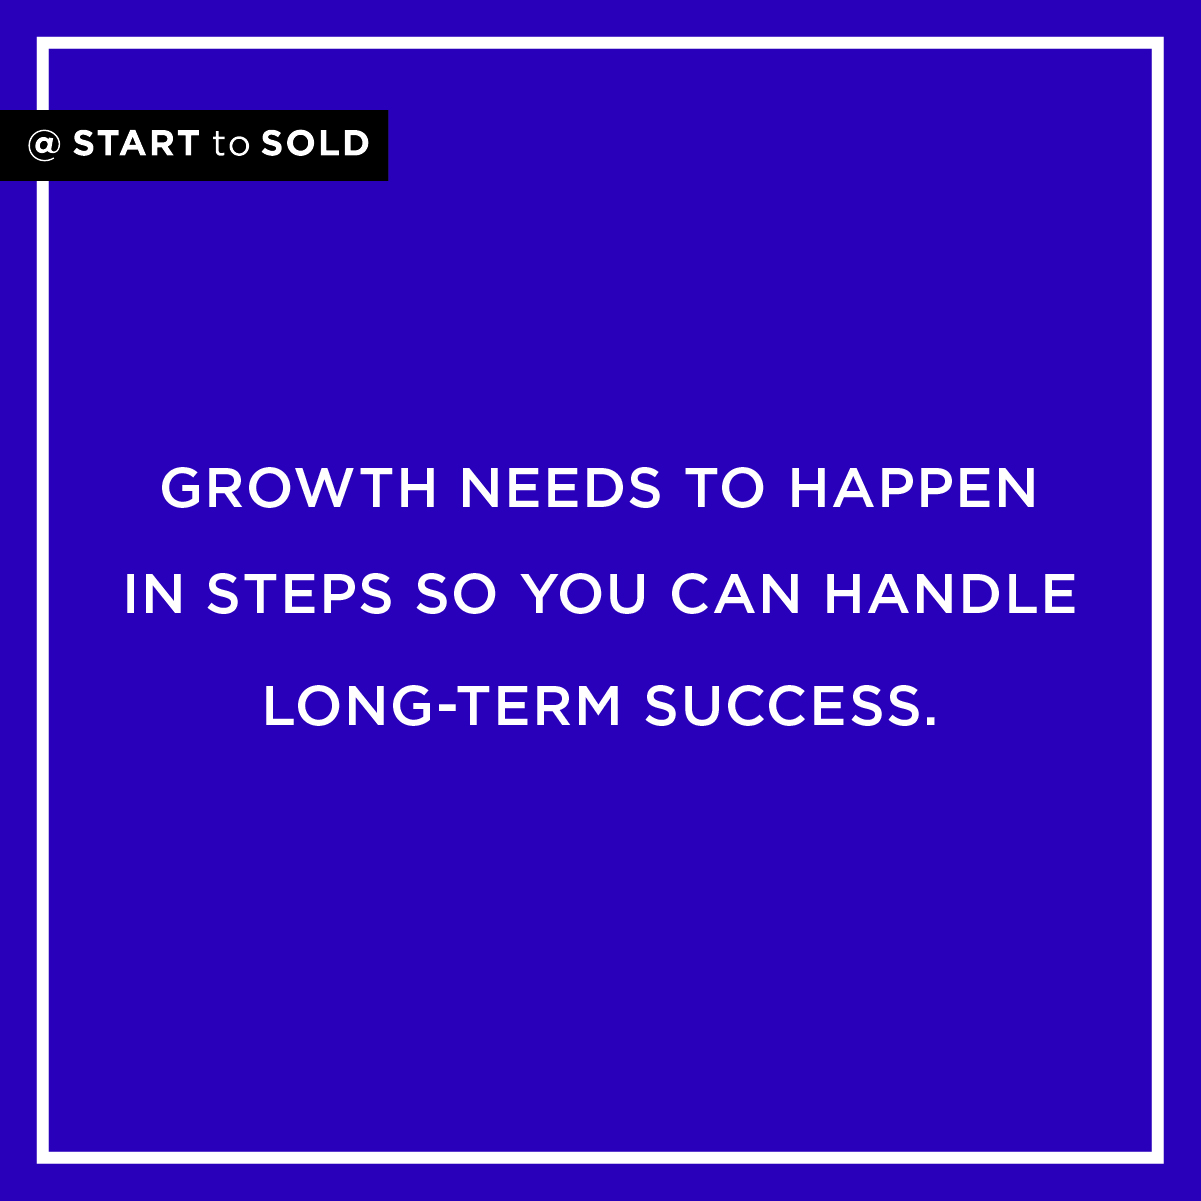 Your business growth needs to happen in small steps in order for you to handle the long term success.